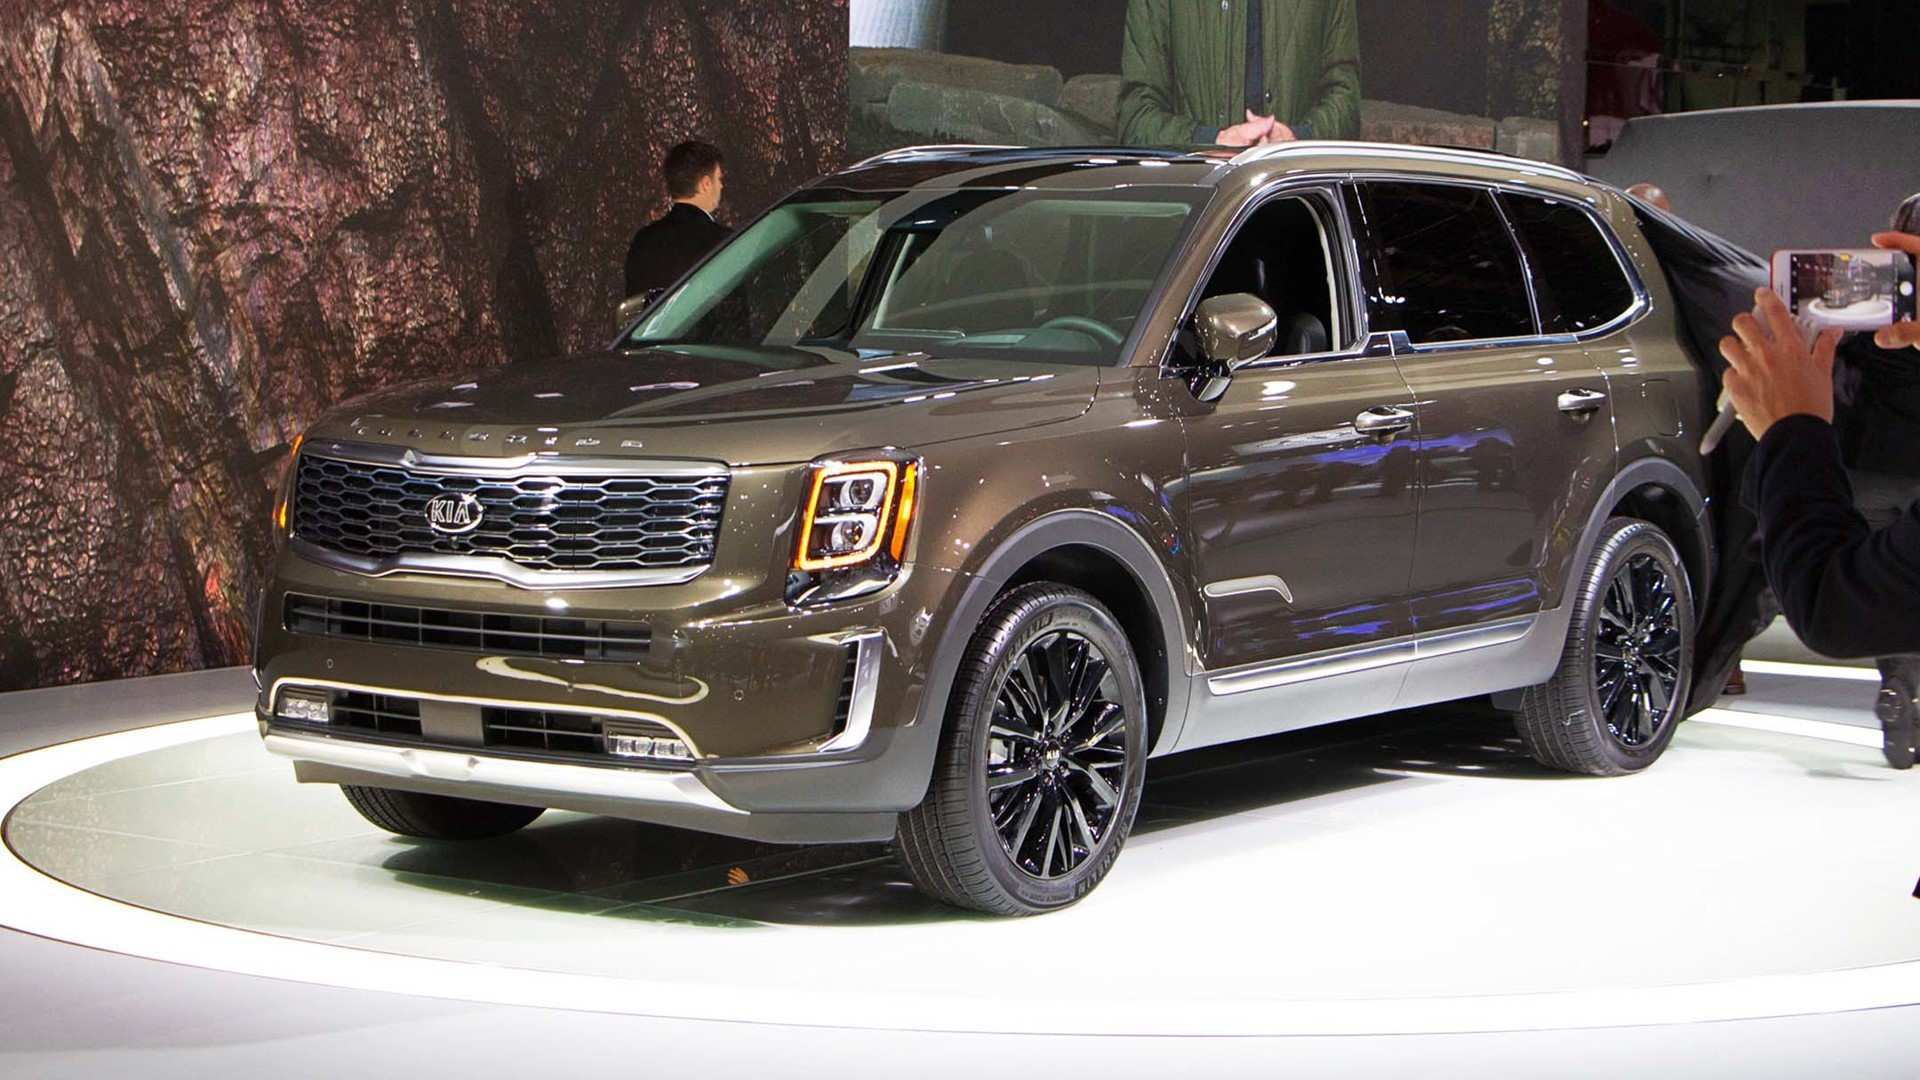 15 Concept of 2020 Kia Telluride Brochure Engine for 2020 Kia Telluride Brochure